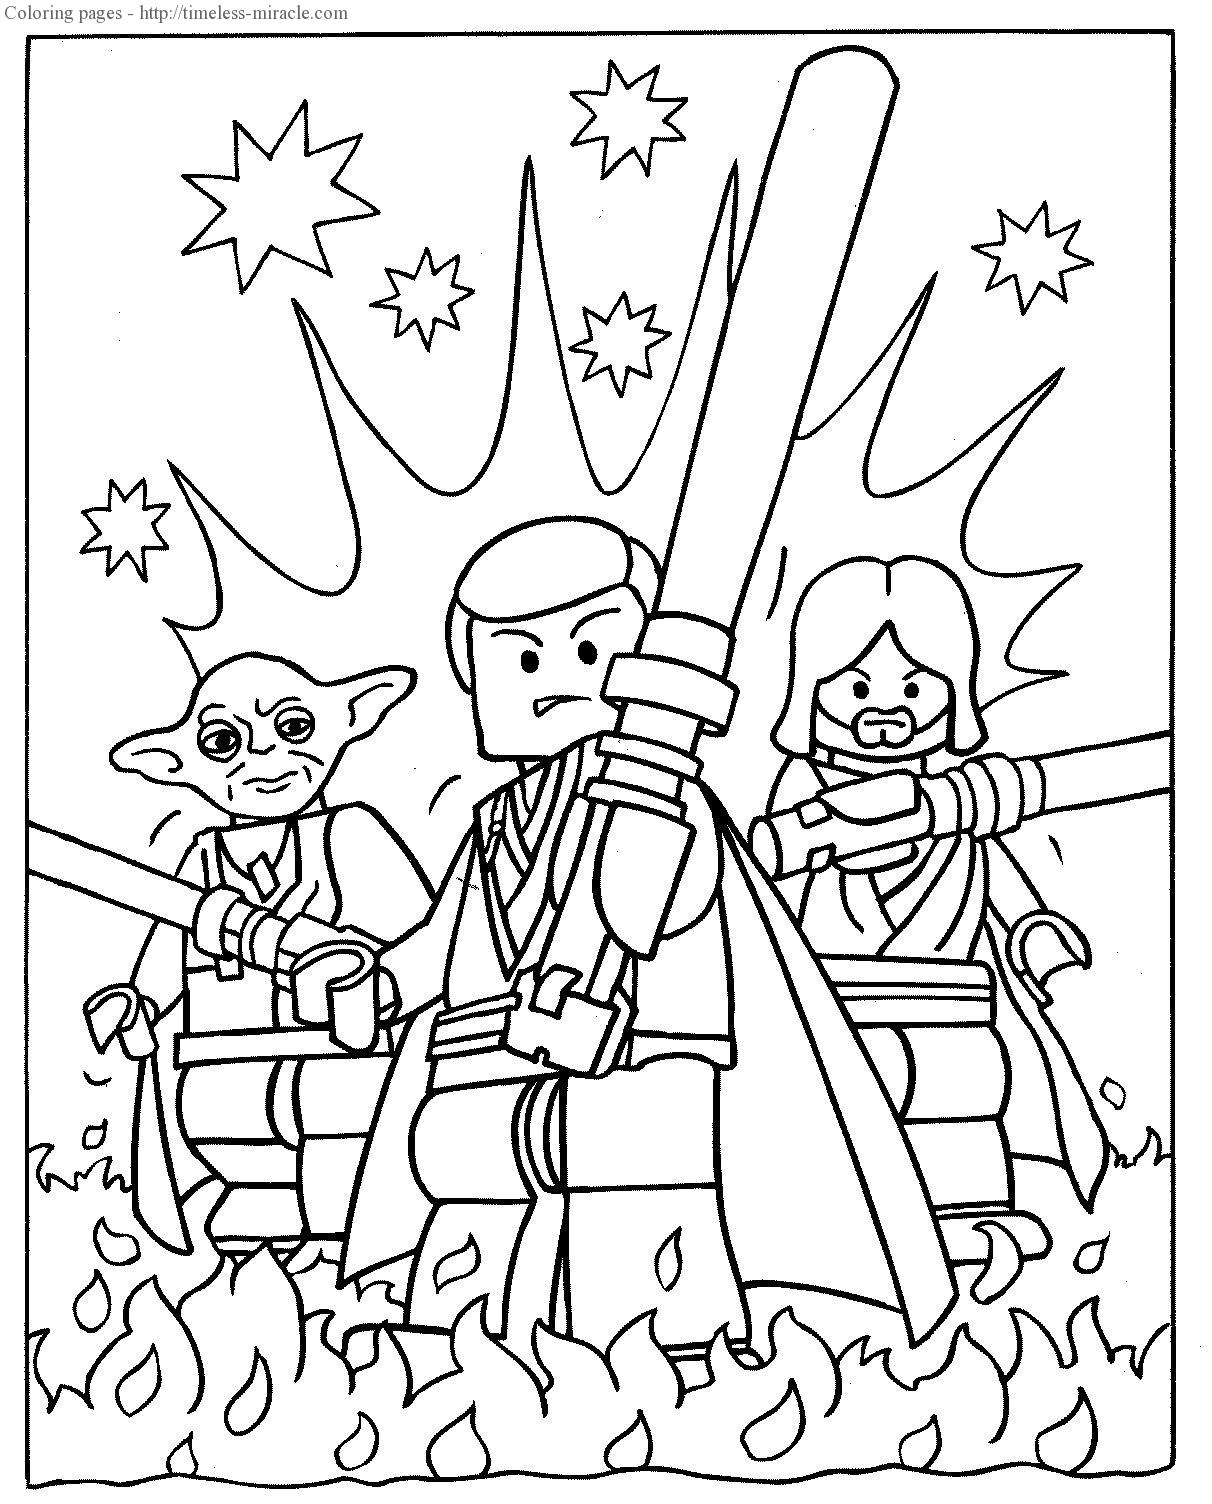 legos star wars coloring pages lego star wars coloring pages to download and print for free wars coloring pages star legos